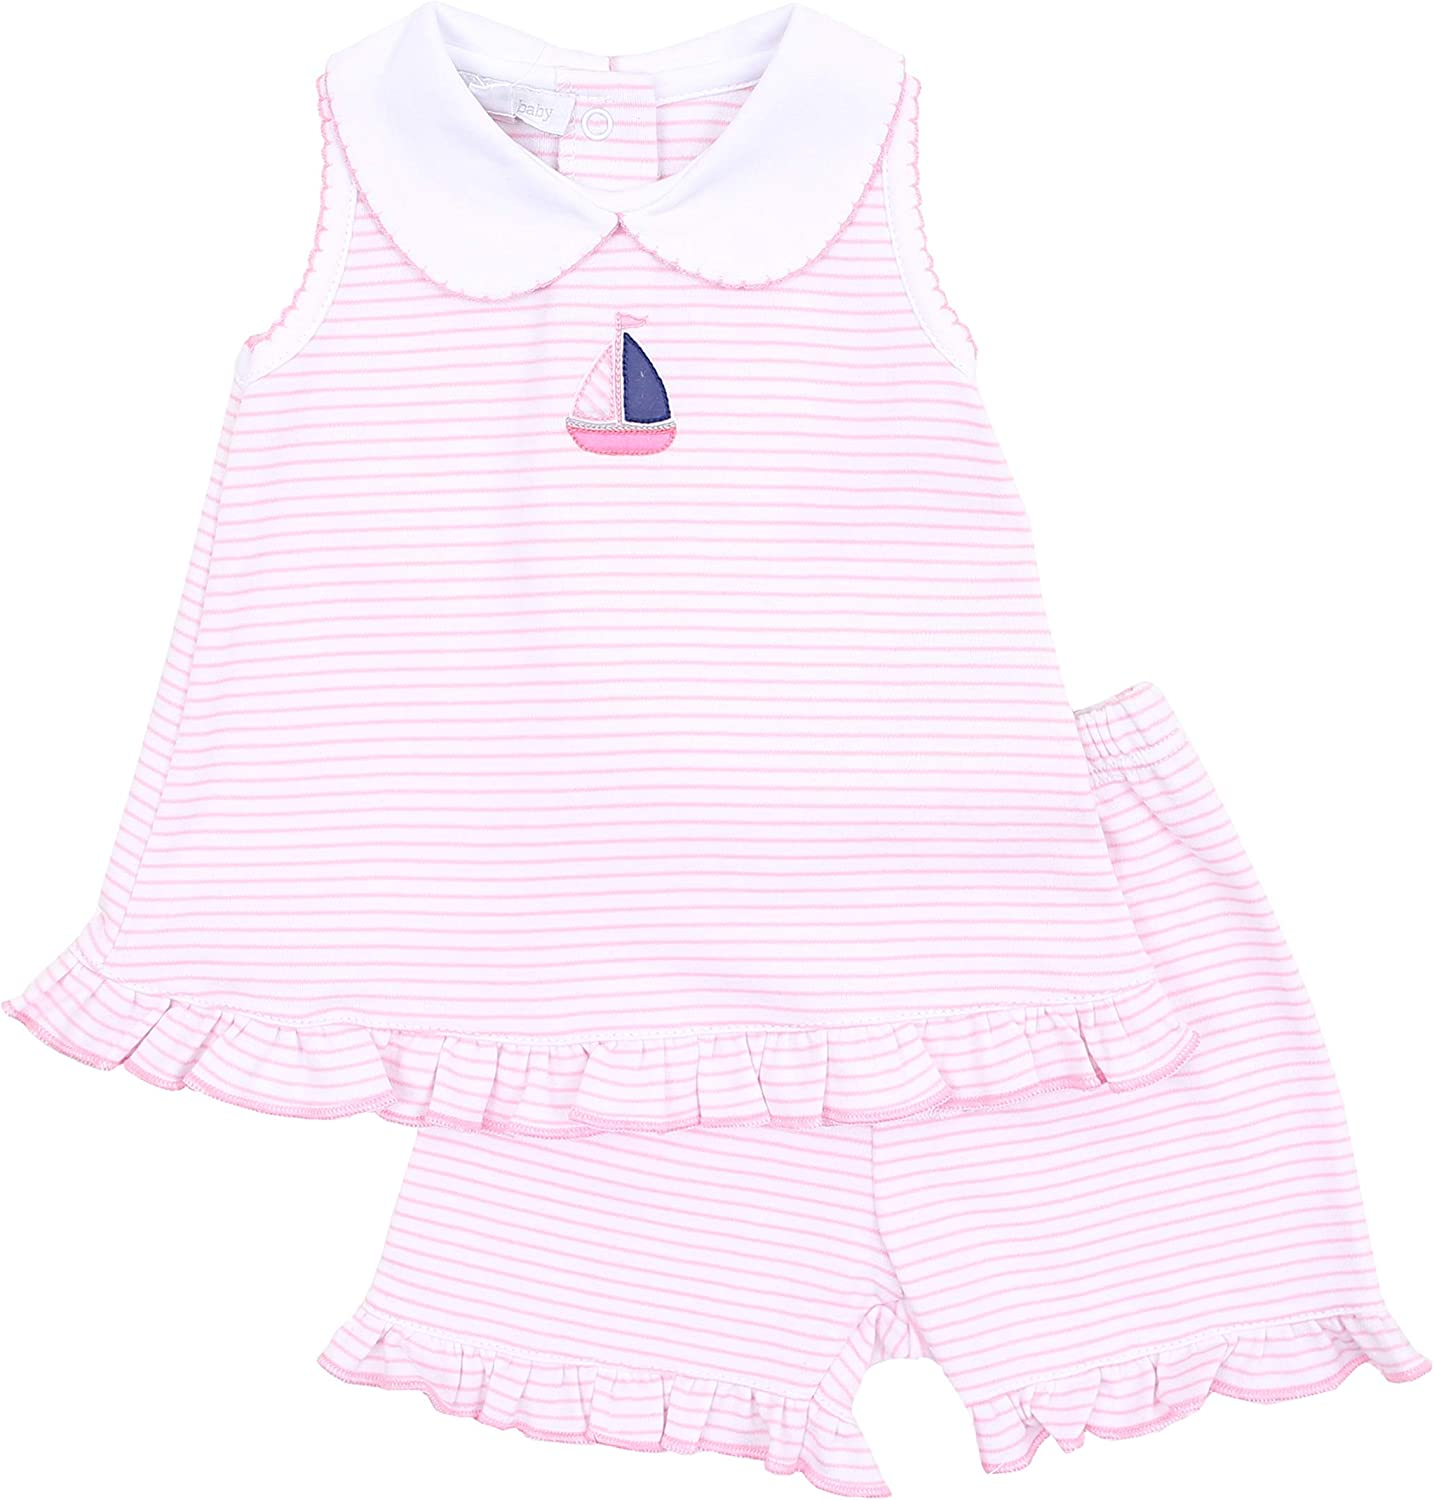 Magnolia Baby Baby Girl Baby Sailor Emb Collared Ruffle Short Set Pink